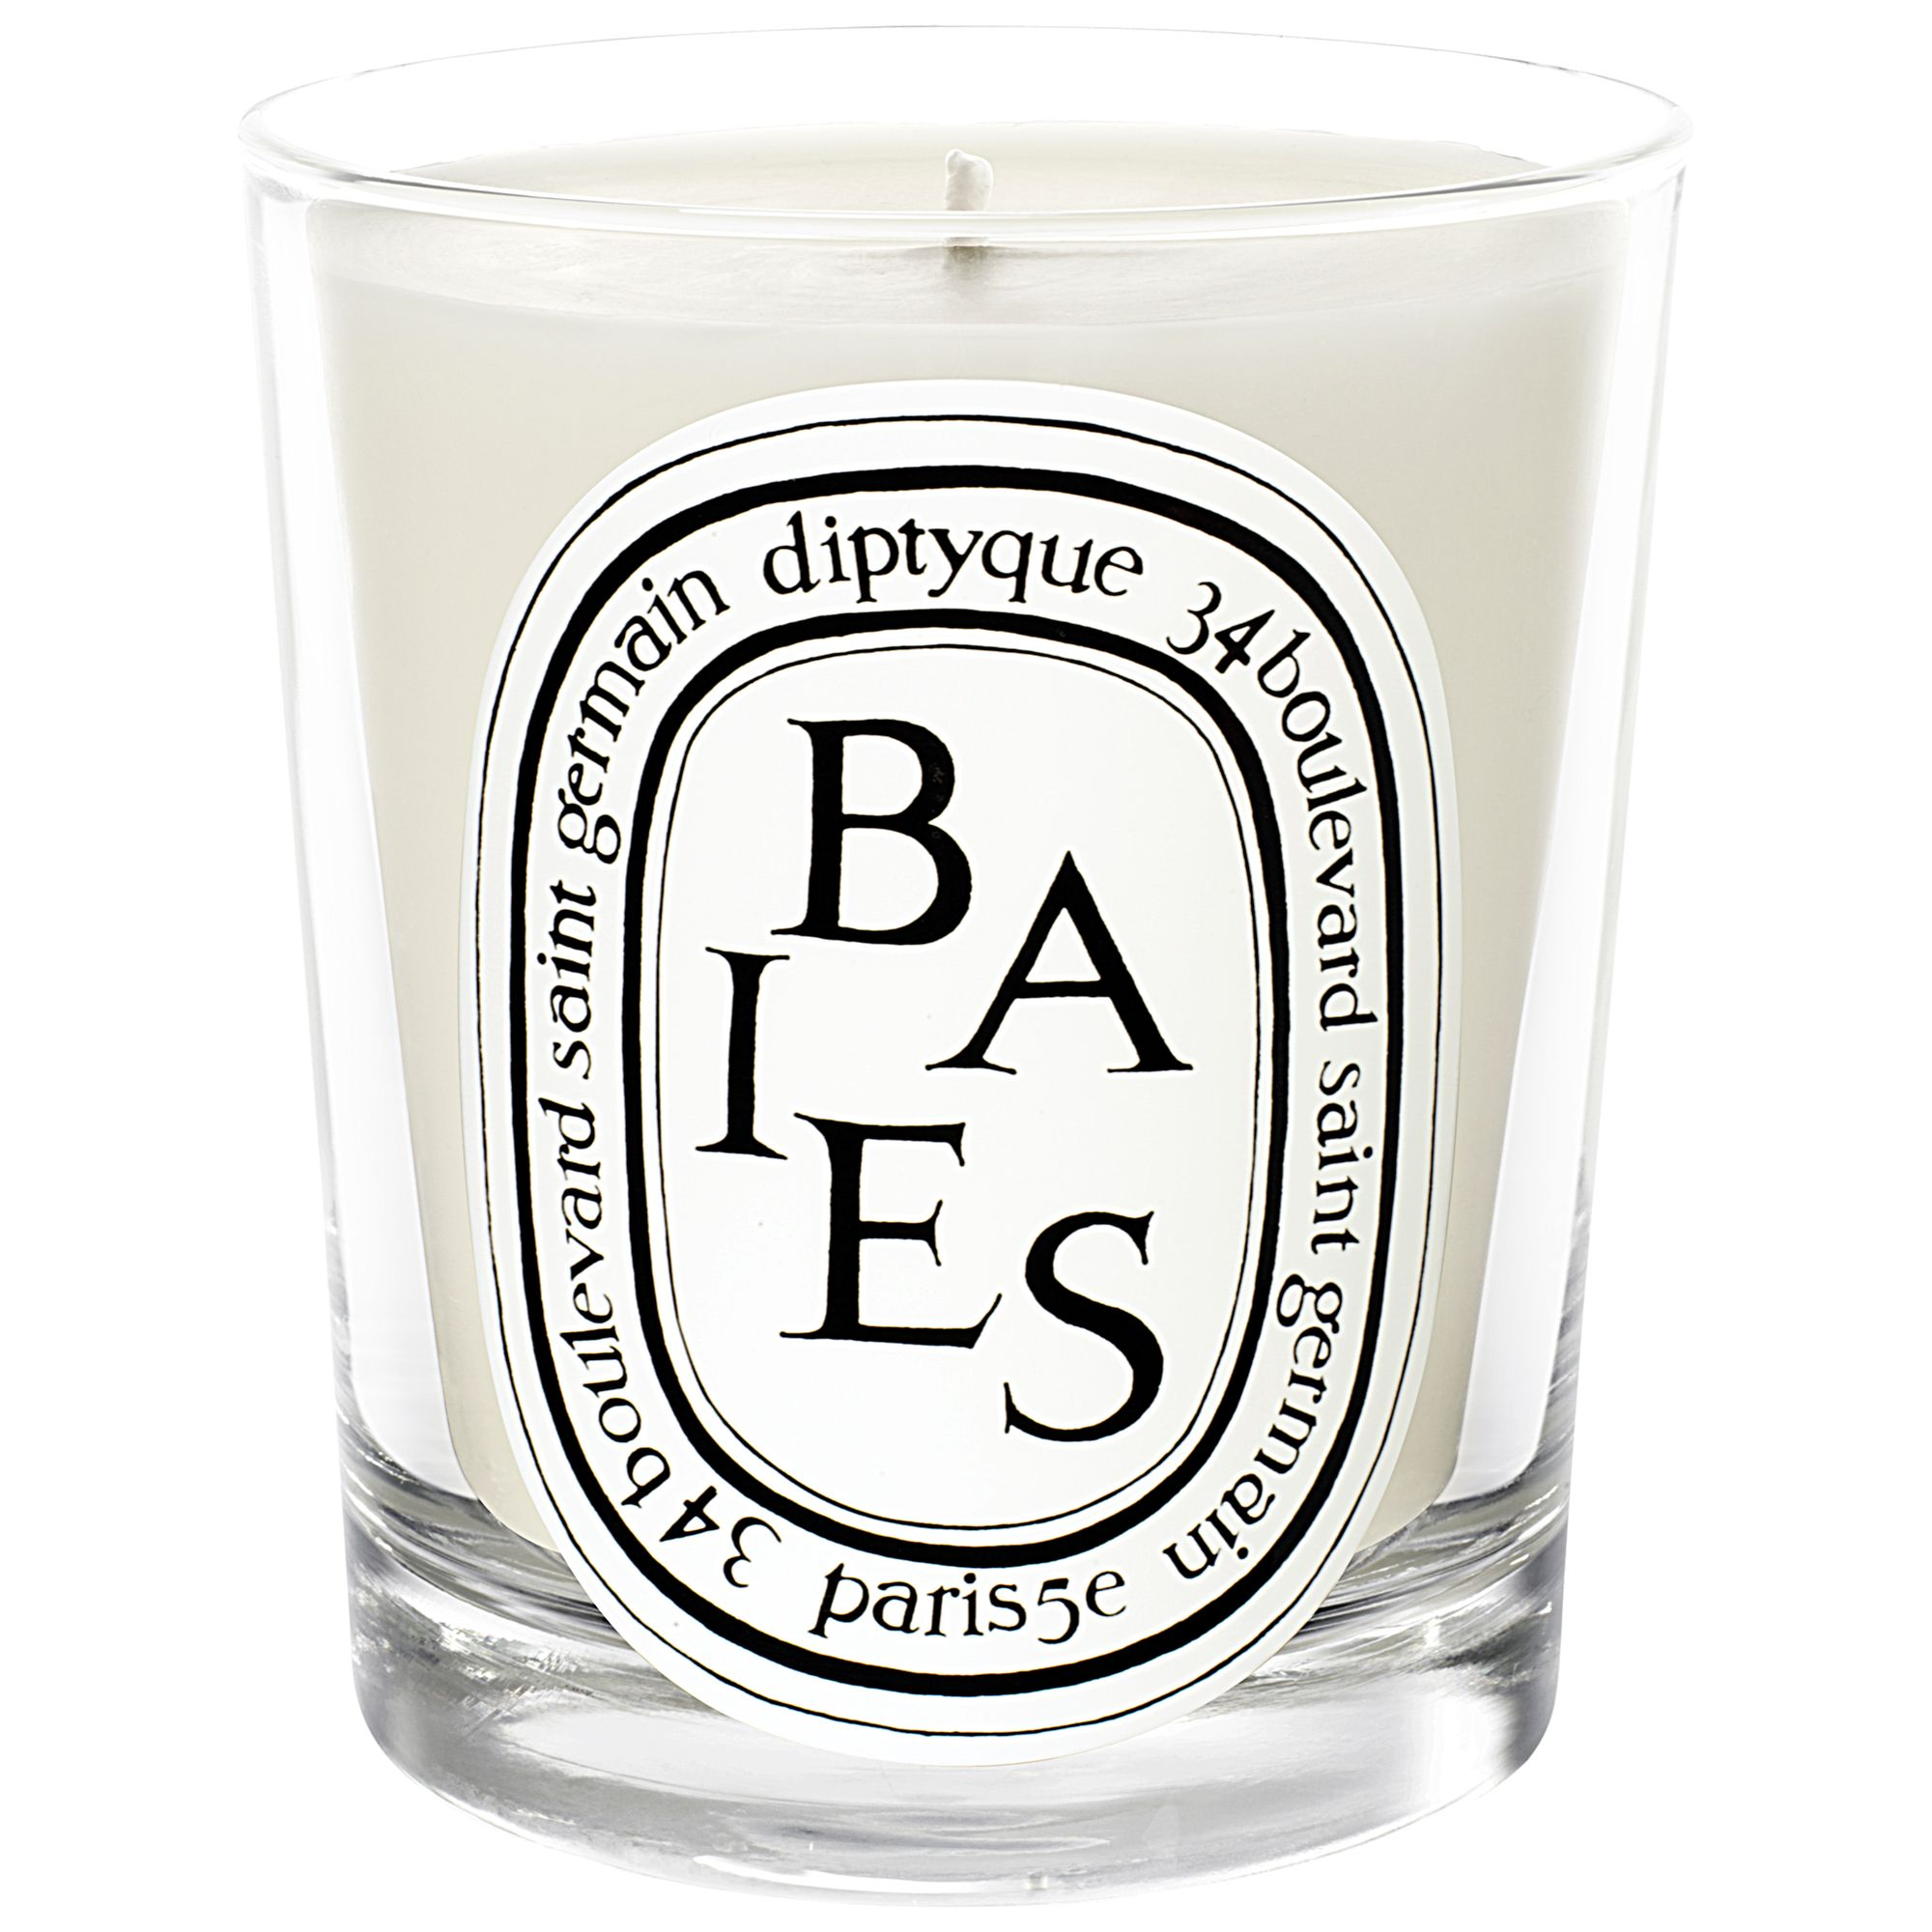 Diptyque Diptyque Baies Scented Mini Candle, 70g